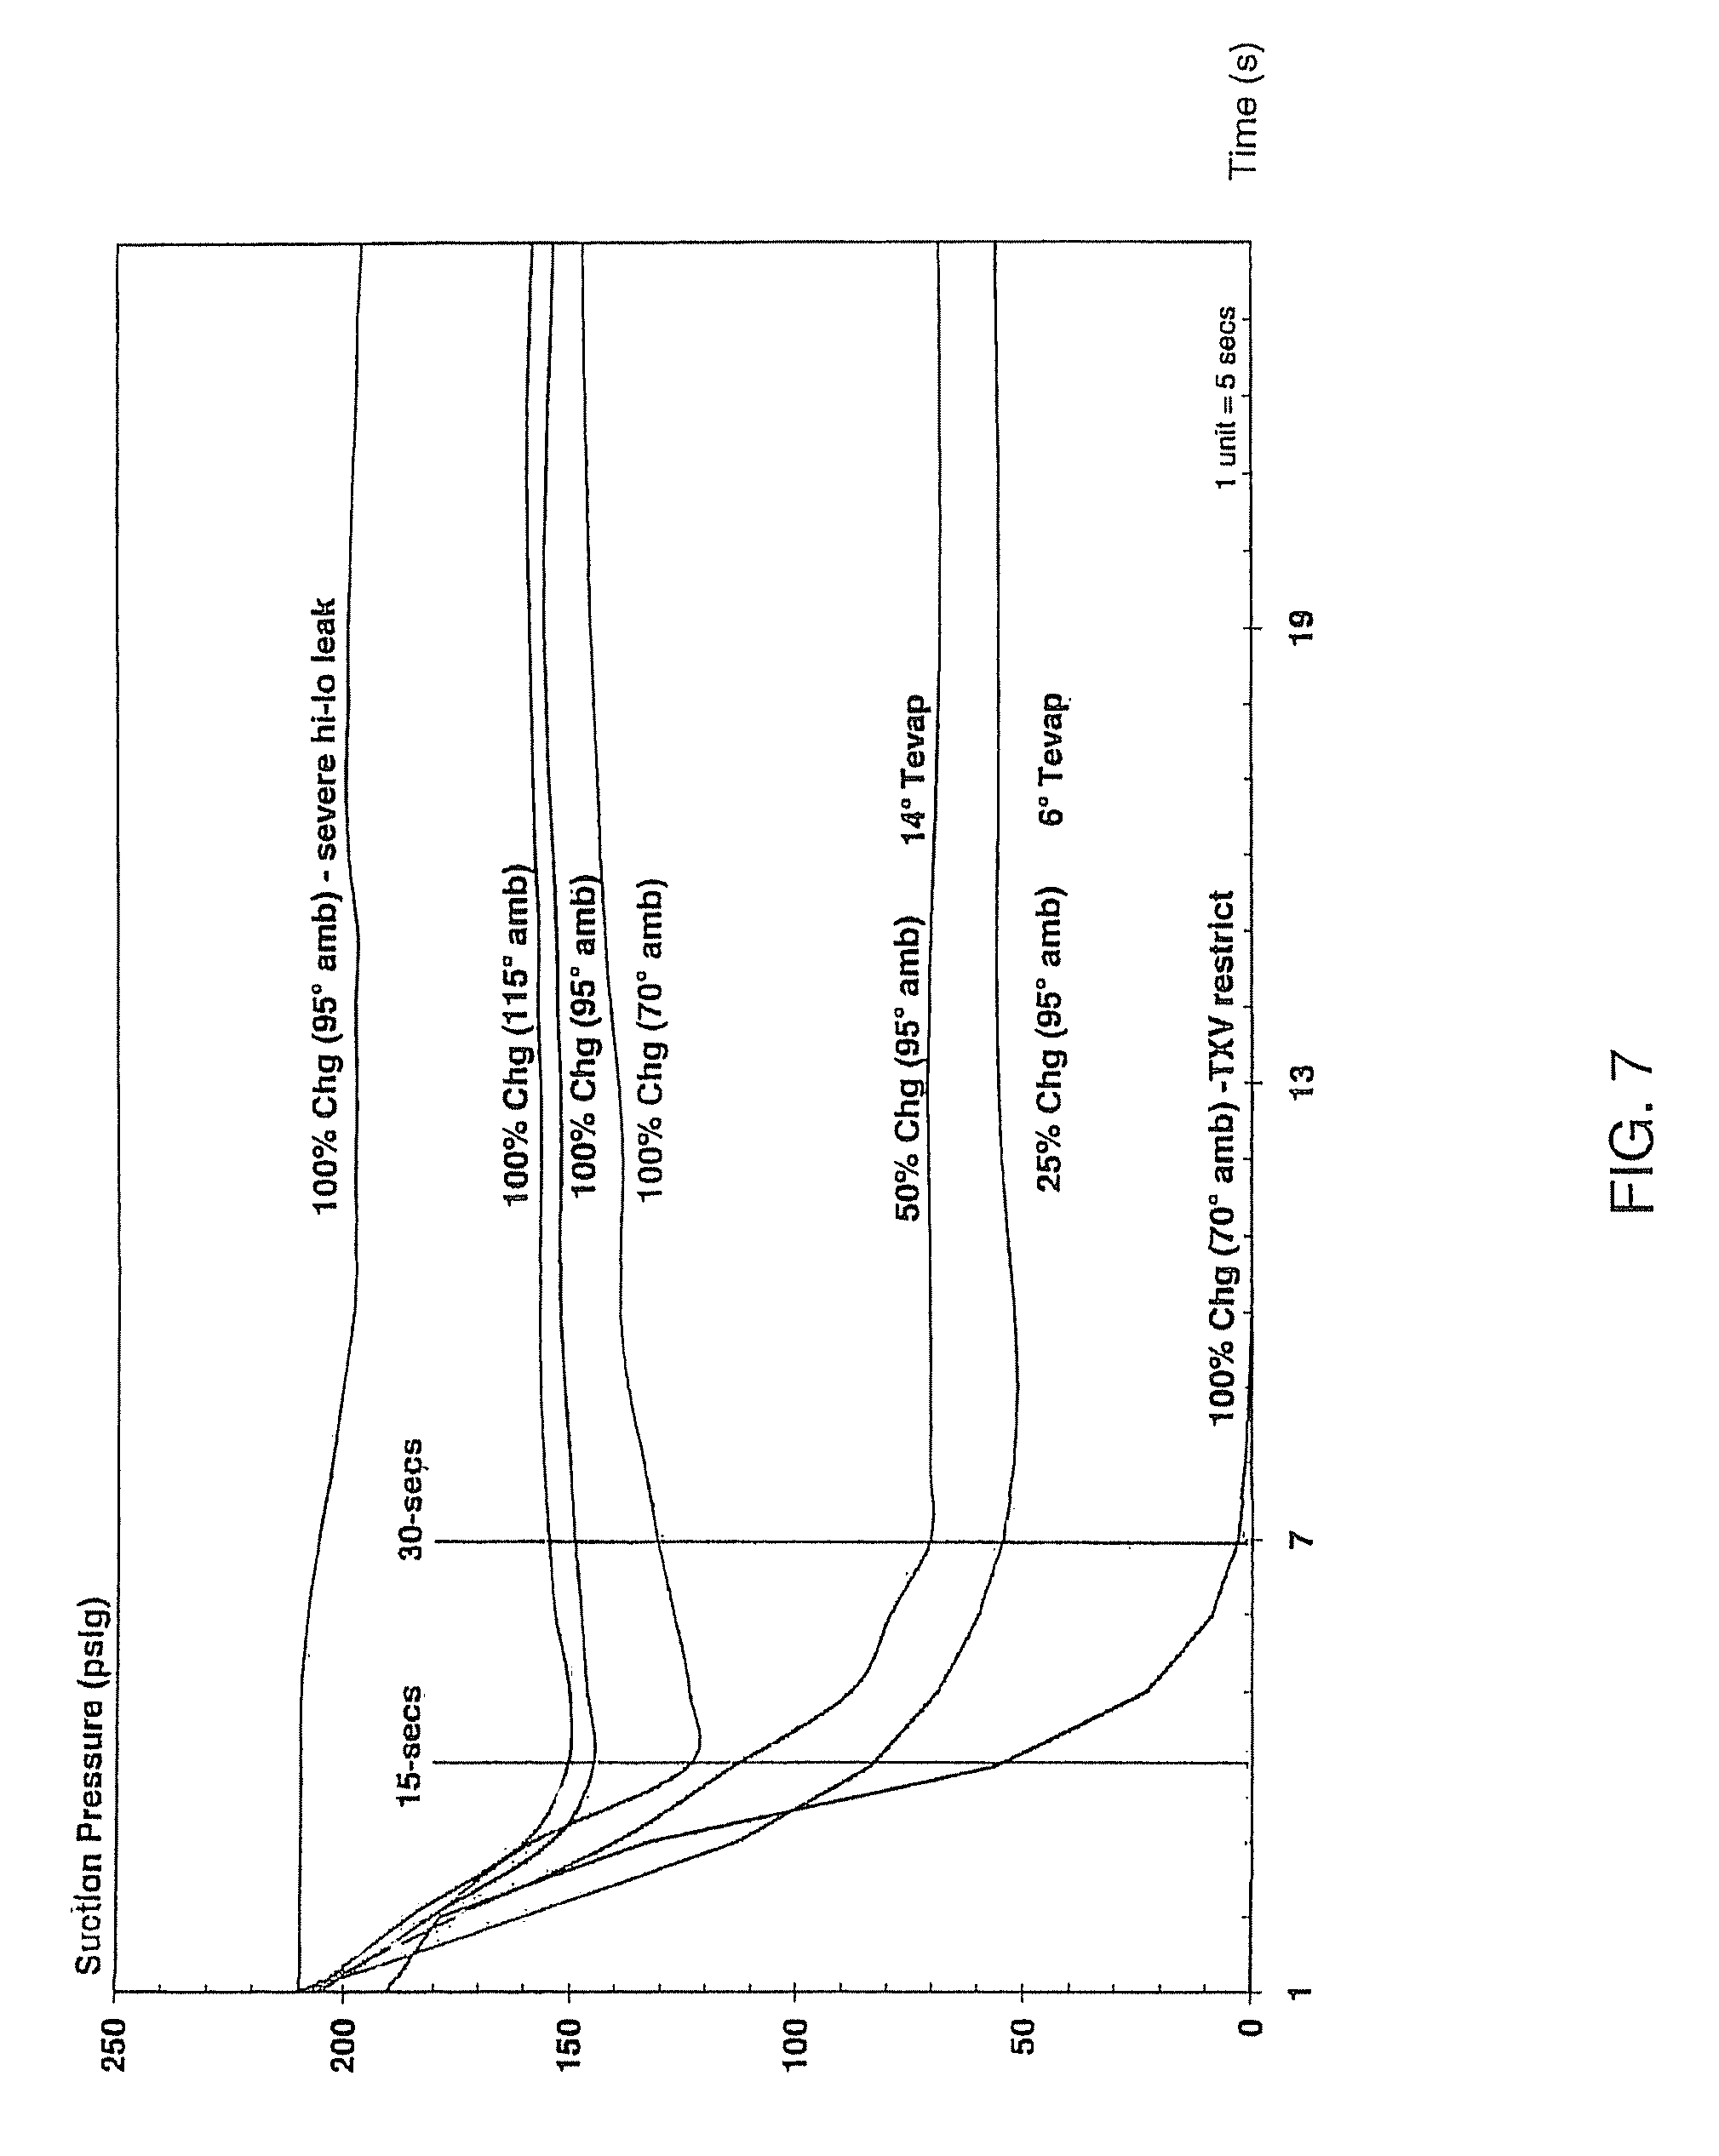 patent us 9,121,407 b2Ingersoll Rand Air Compressor Wiring Diagram Patent Us4336001 Solid #20